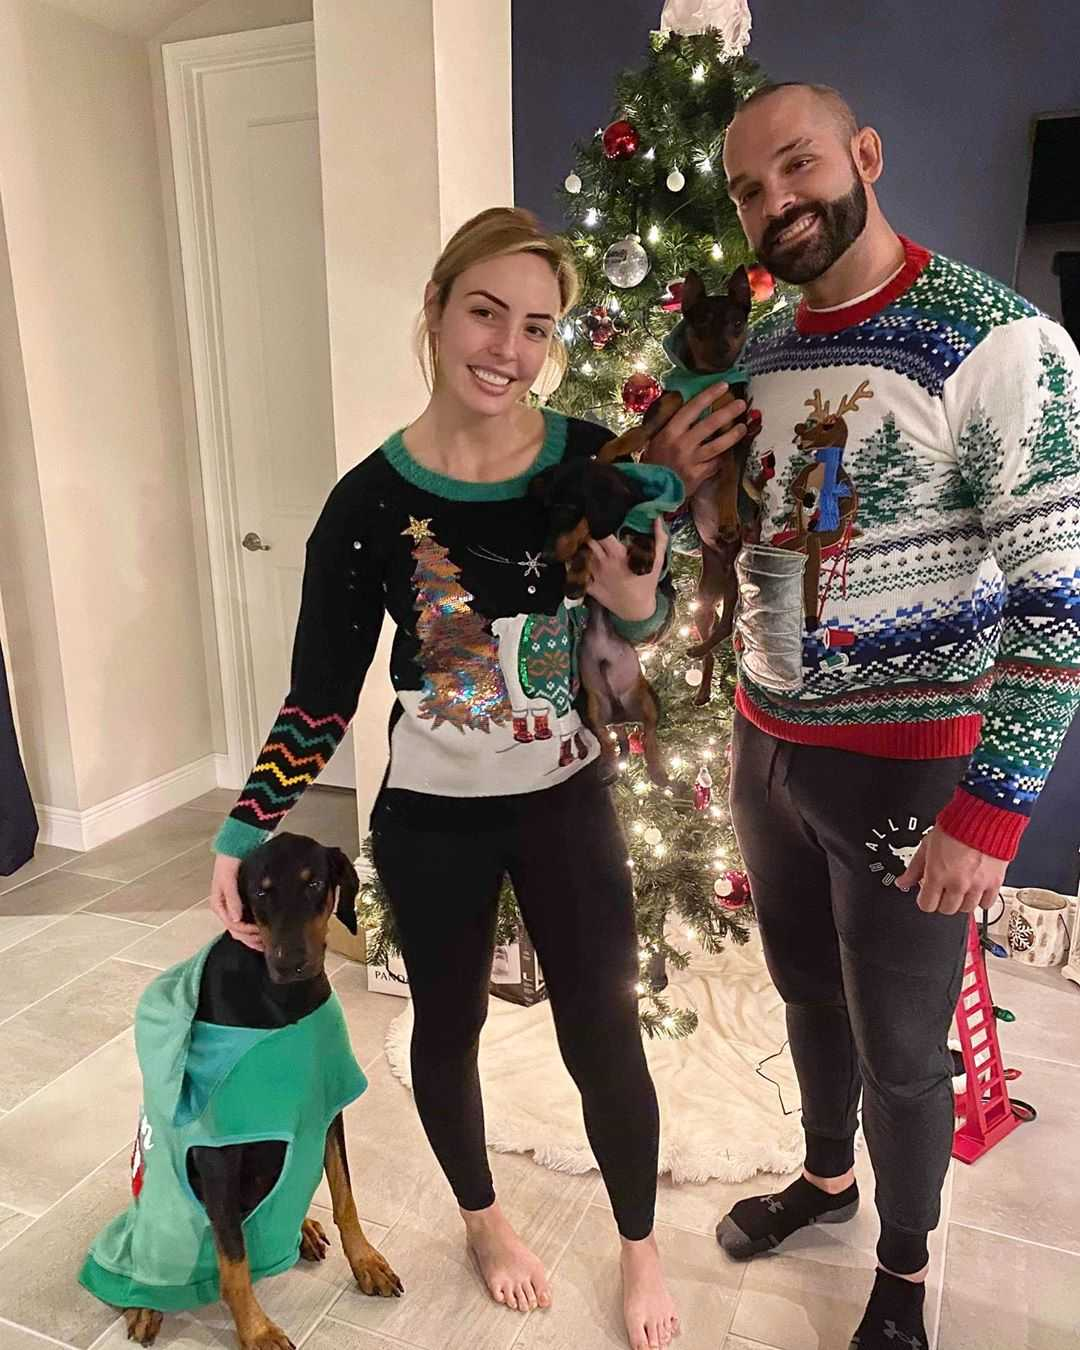 Peyton Royce and Tye Dillinger Christmas